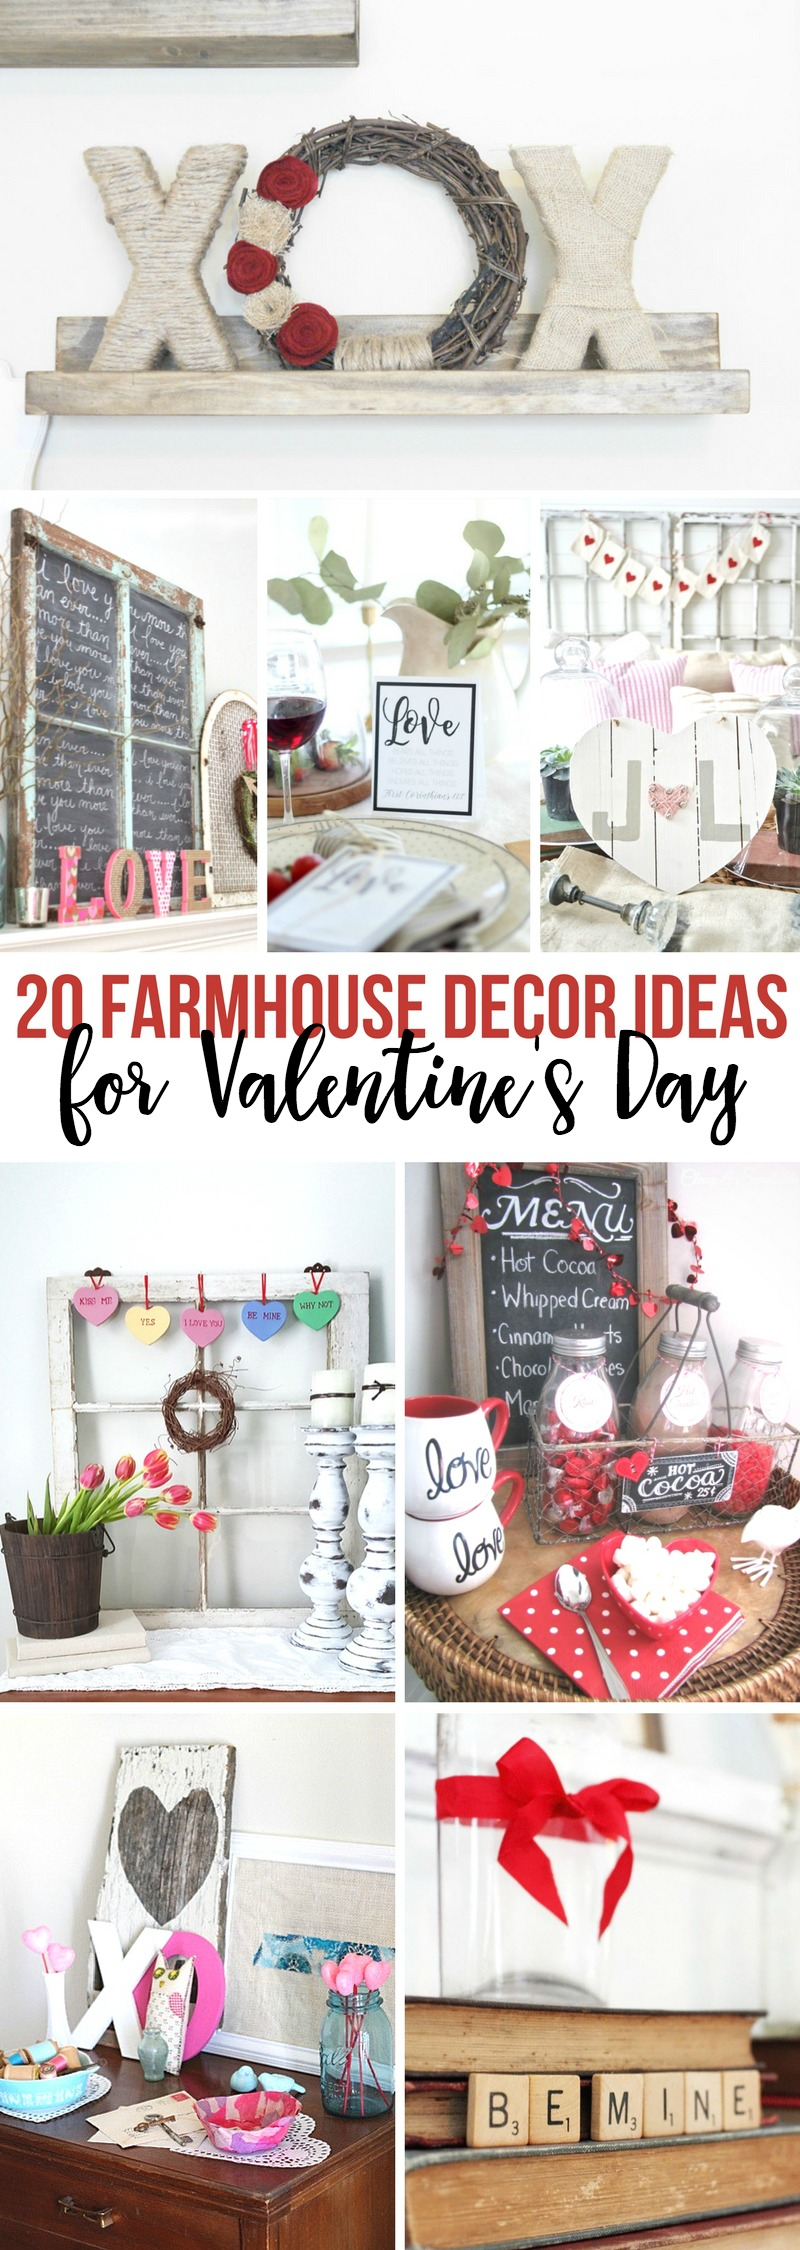 Farmhouse Decor Ideas for Valentine's Day